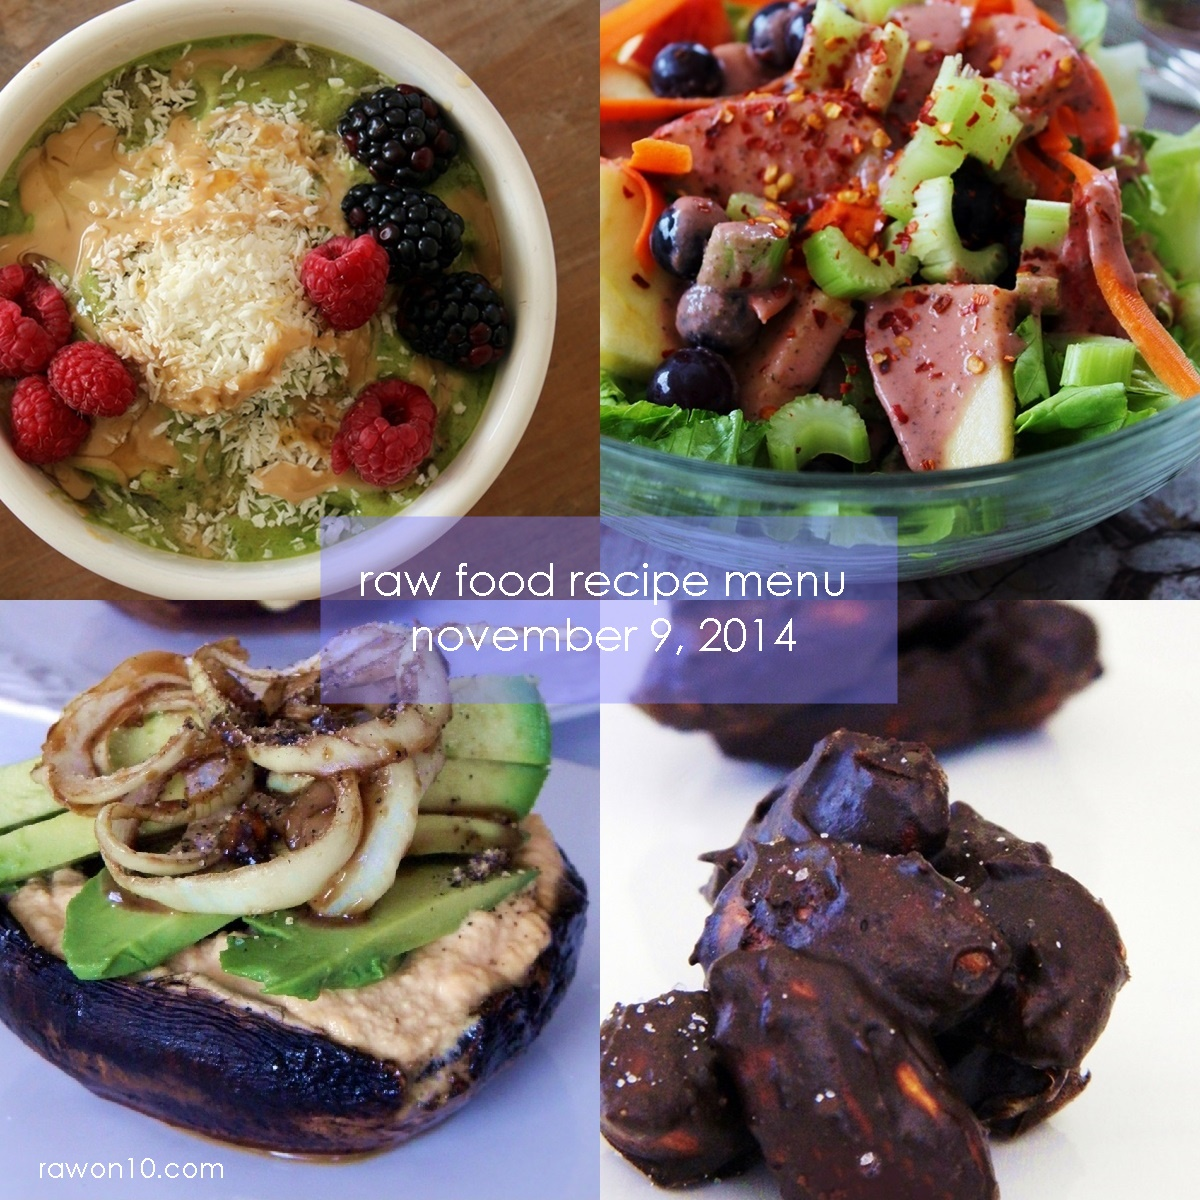 Raw on 10 a day or less raw food recipe menu november 9 2014 raw food recipe menu november 9 2014 breakfast forumfinder Image collections